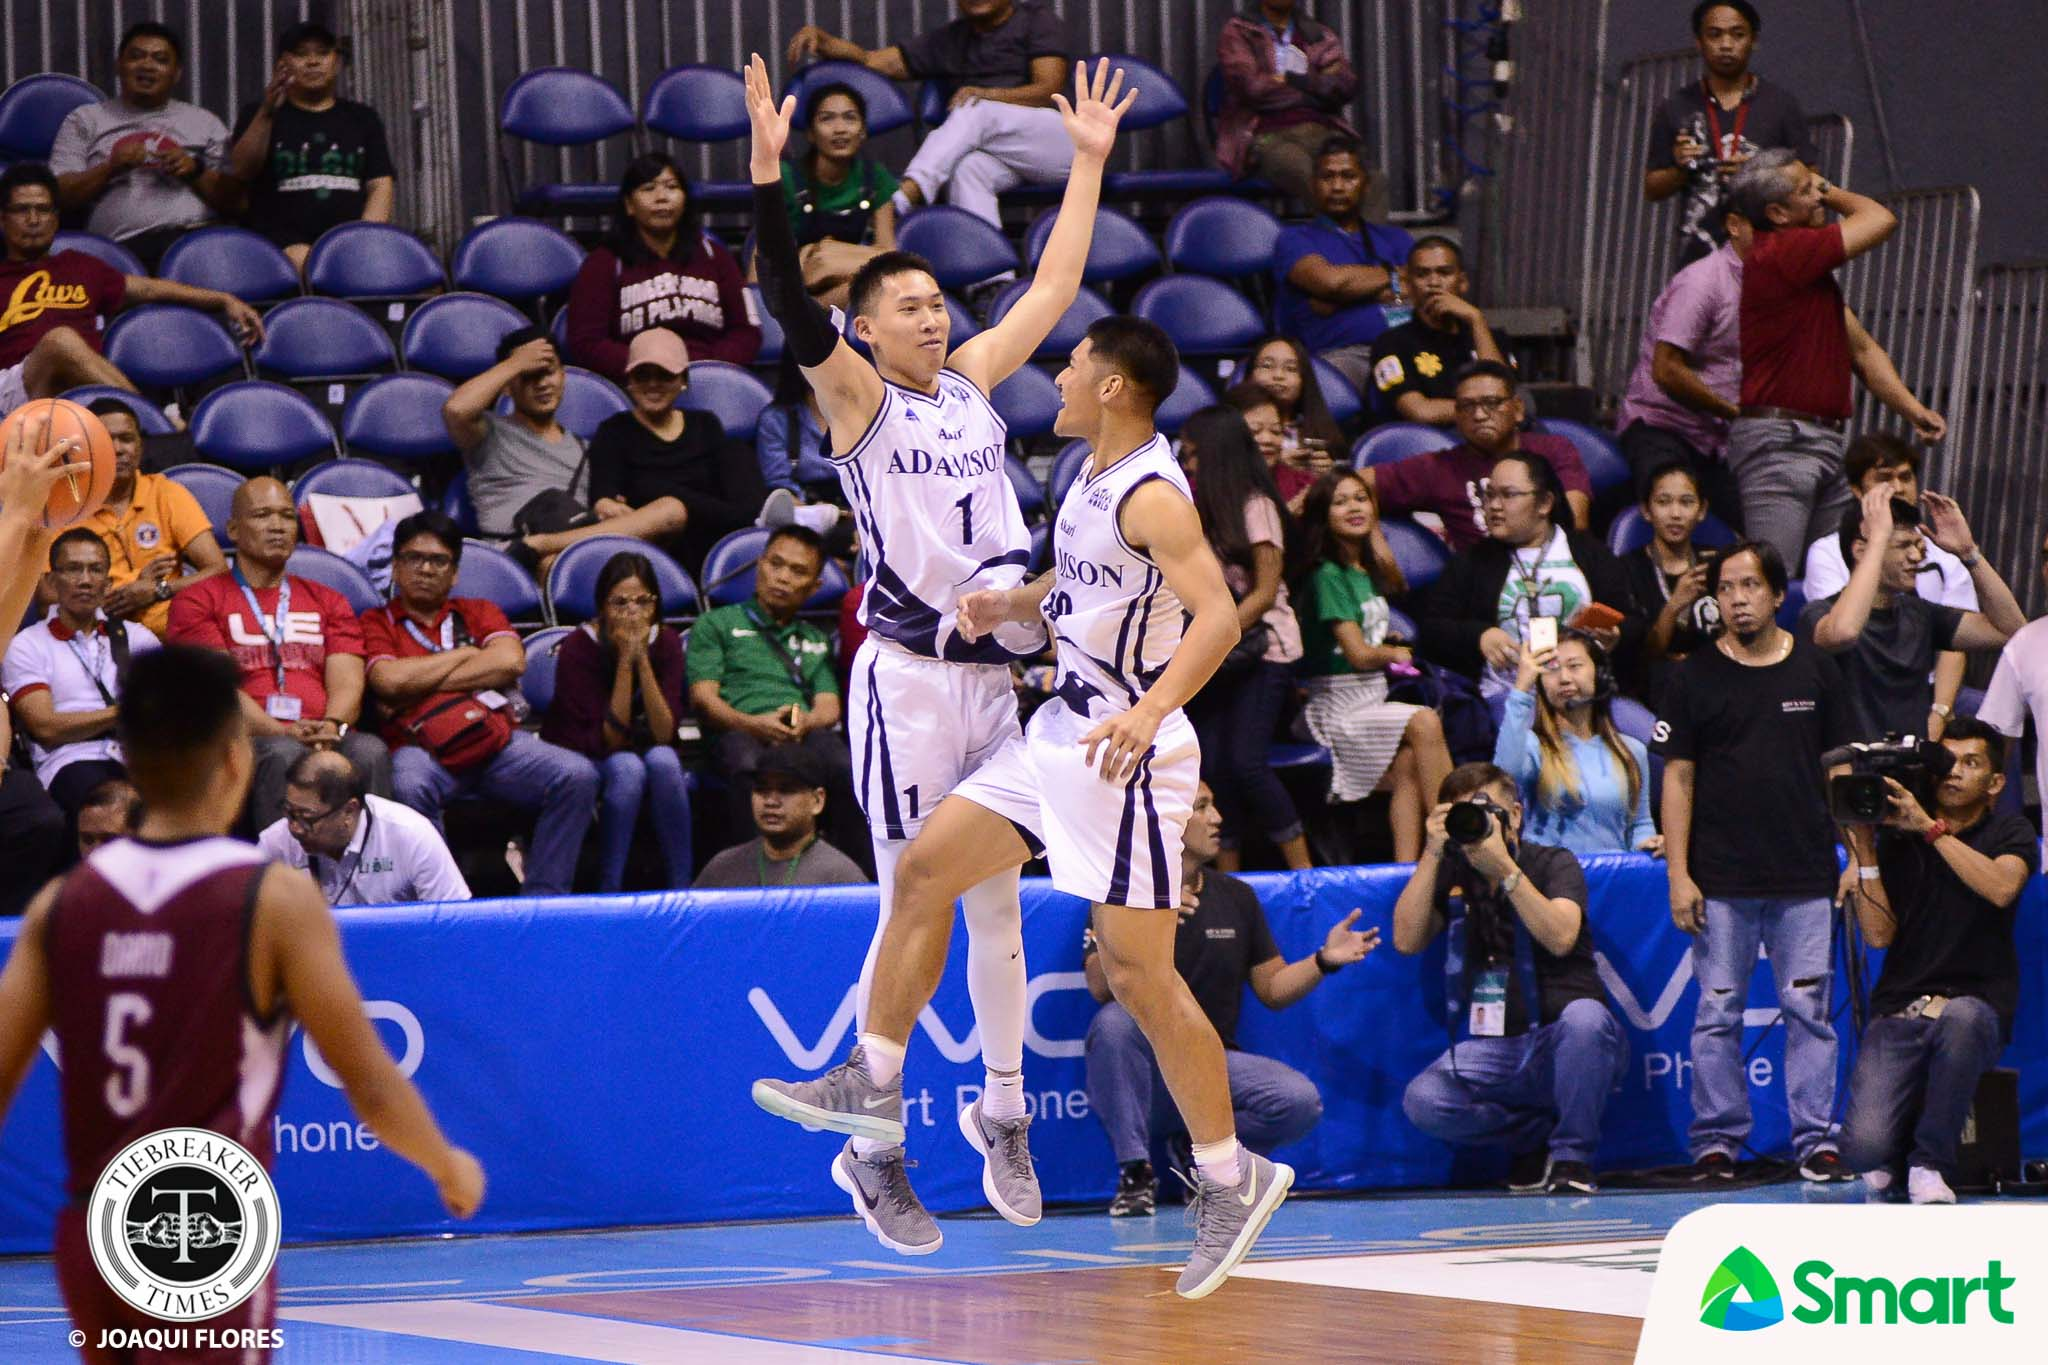 Philippine Sports News - Tiebreaker Times Sean Manganti cleans up for Papi Sarr: 'I'm glad I was there to save us' AdU Basketball News UAAP  UAAP Season 80 Men's Basketball UAAP Season 80 Sean Manganti Franz Pumaren Adamson Men's Basketball